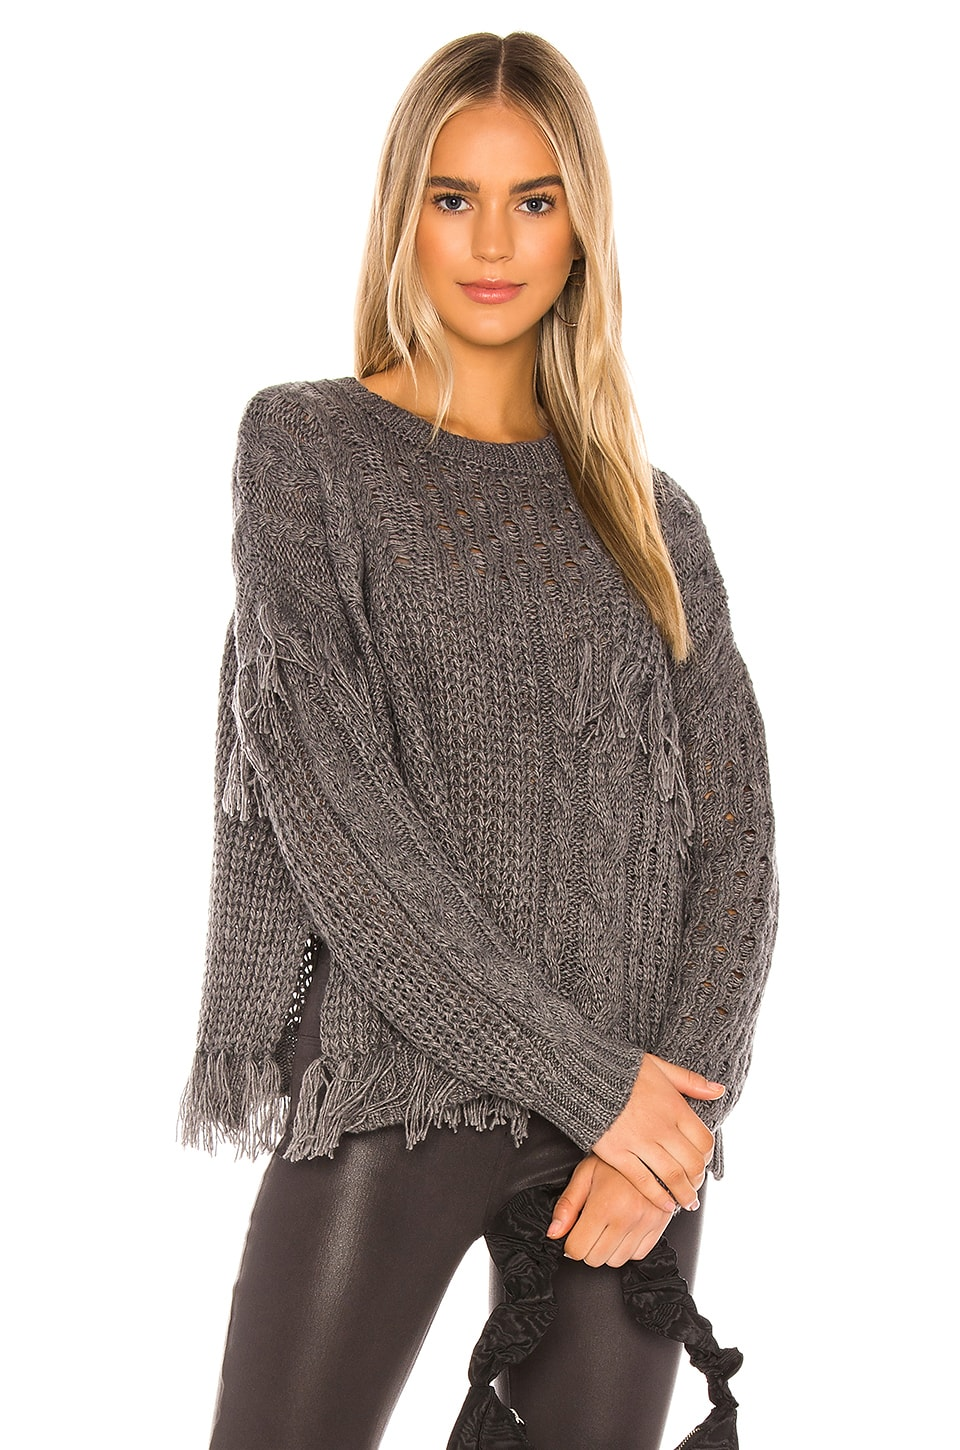 cupcakes and cashmere Romy Pullover in Medium Heather Grey